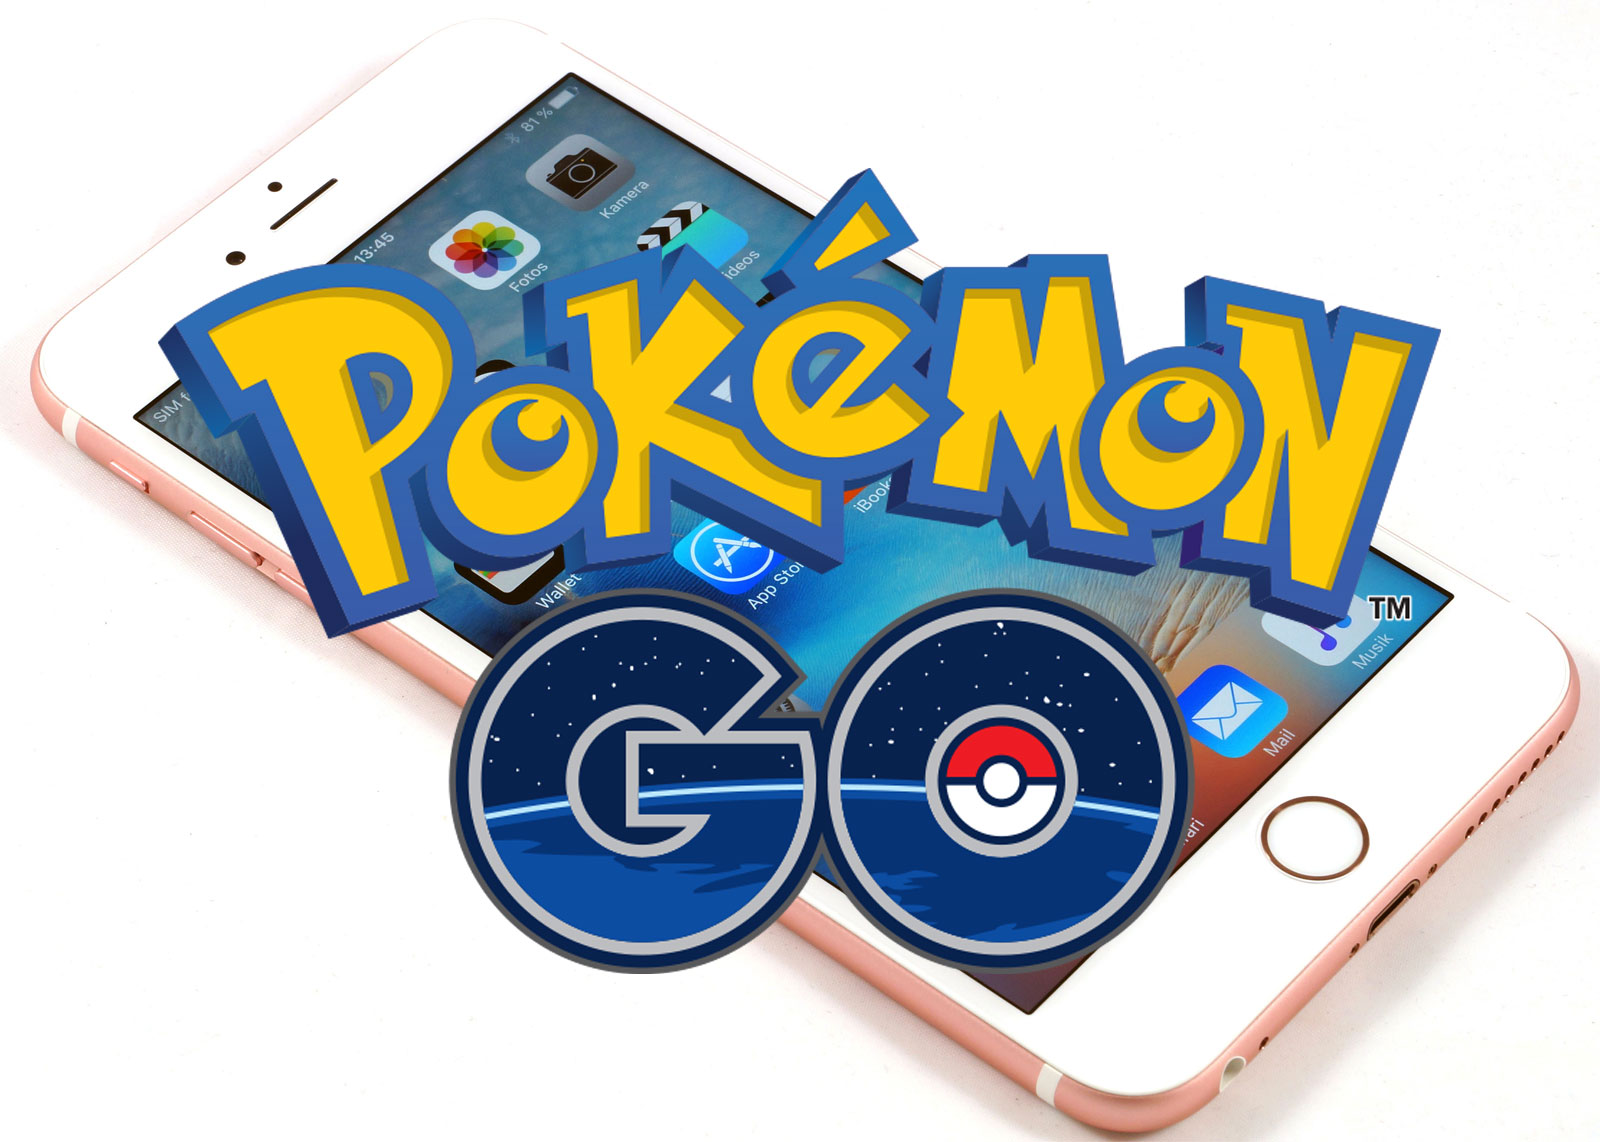 Logo de Pokemon Go sobre un iPhone